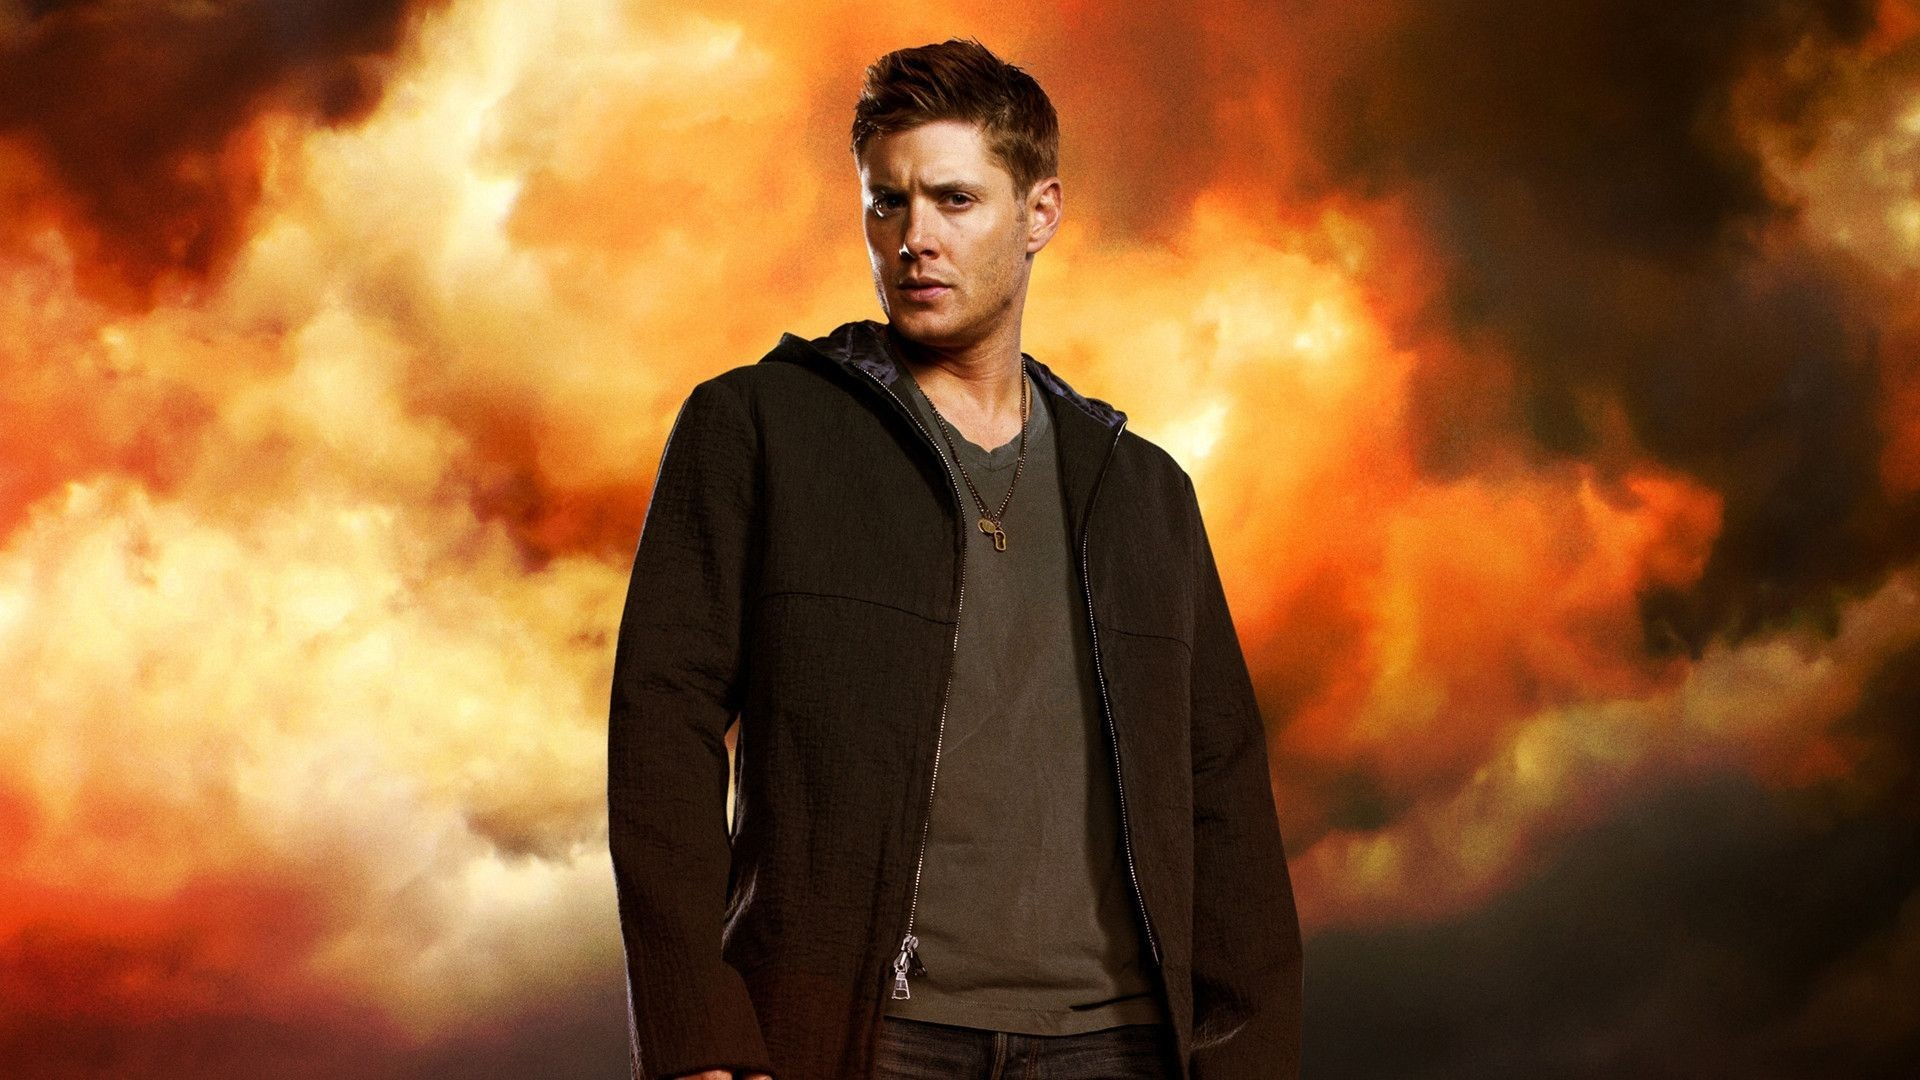 1920x1080 ... download free dean winchester wallpaper pixelstalk net ...